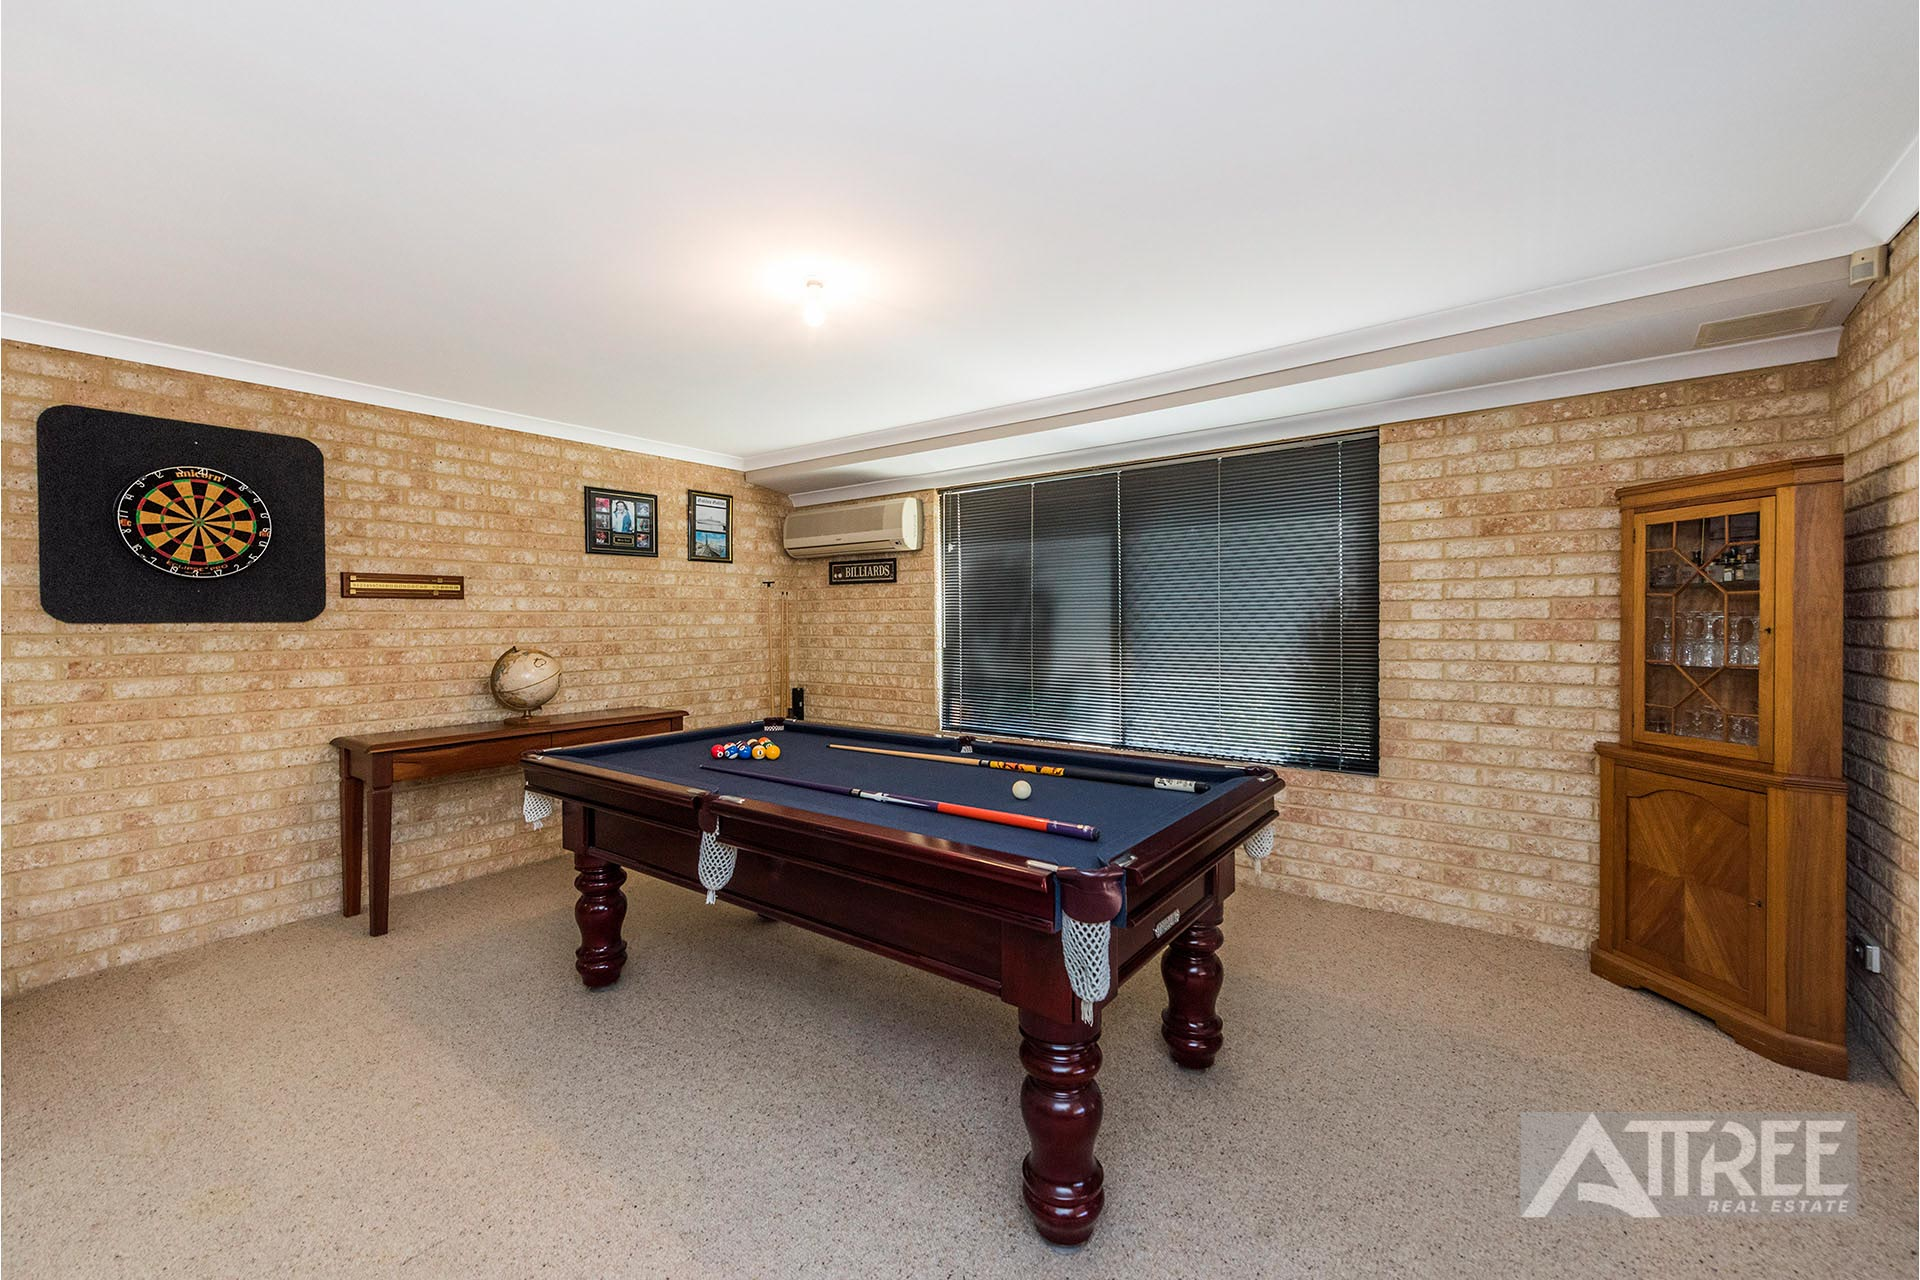 Property for sale in CANNING VALE, 3 Kanani Drive : Attree Real Estate